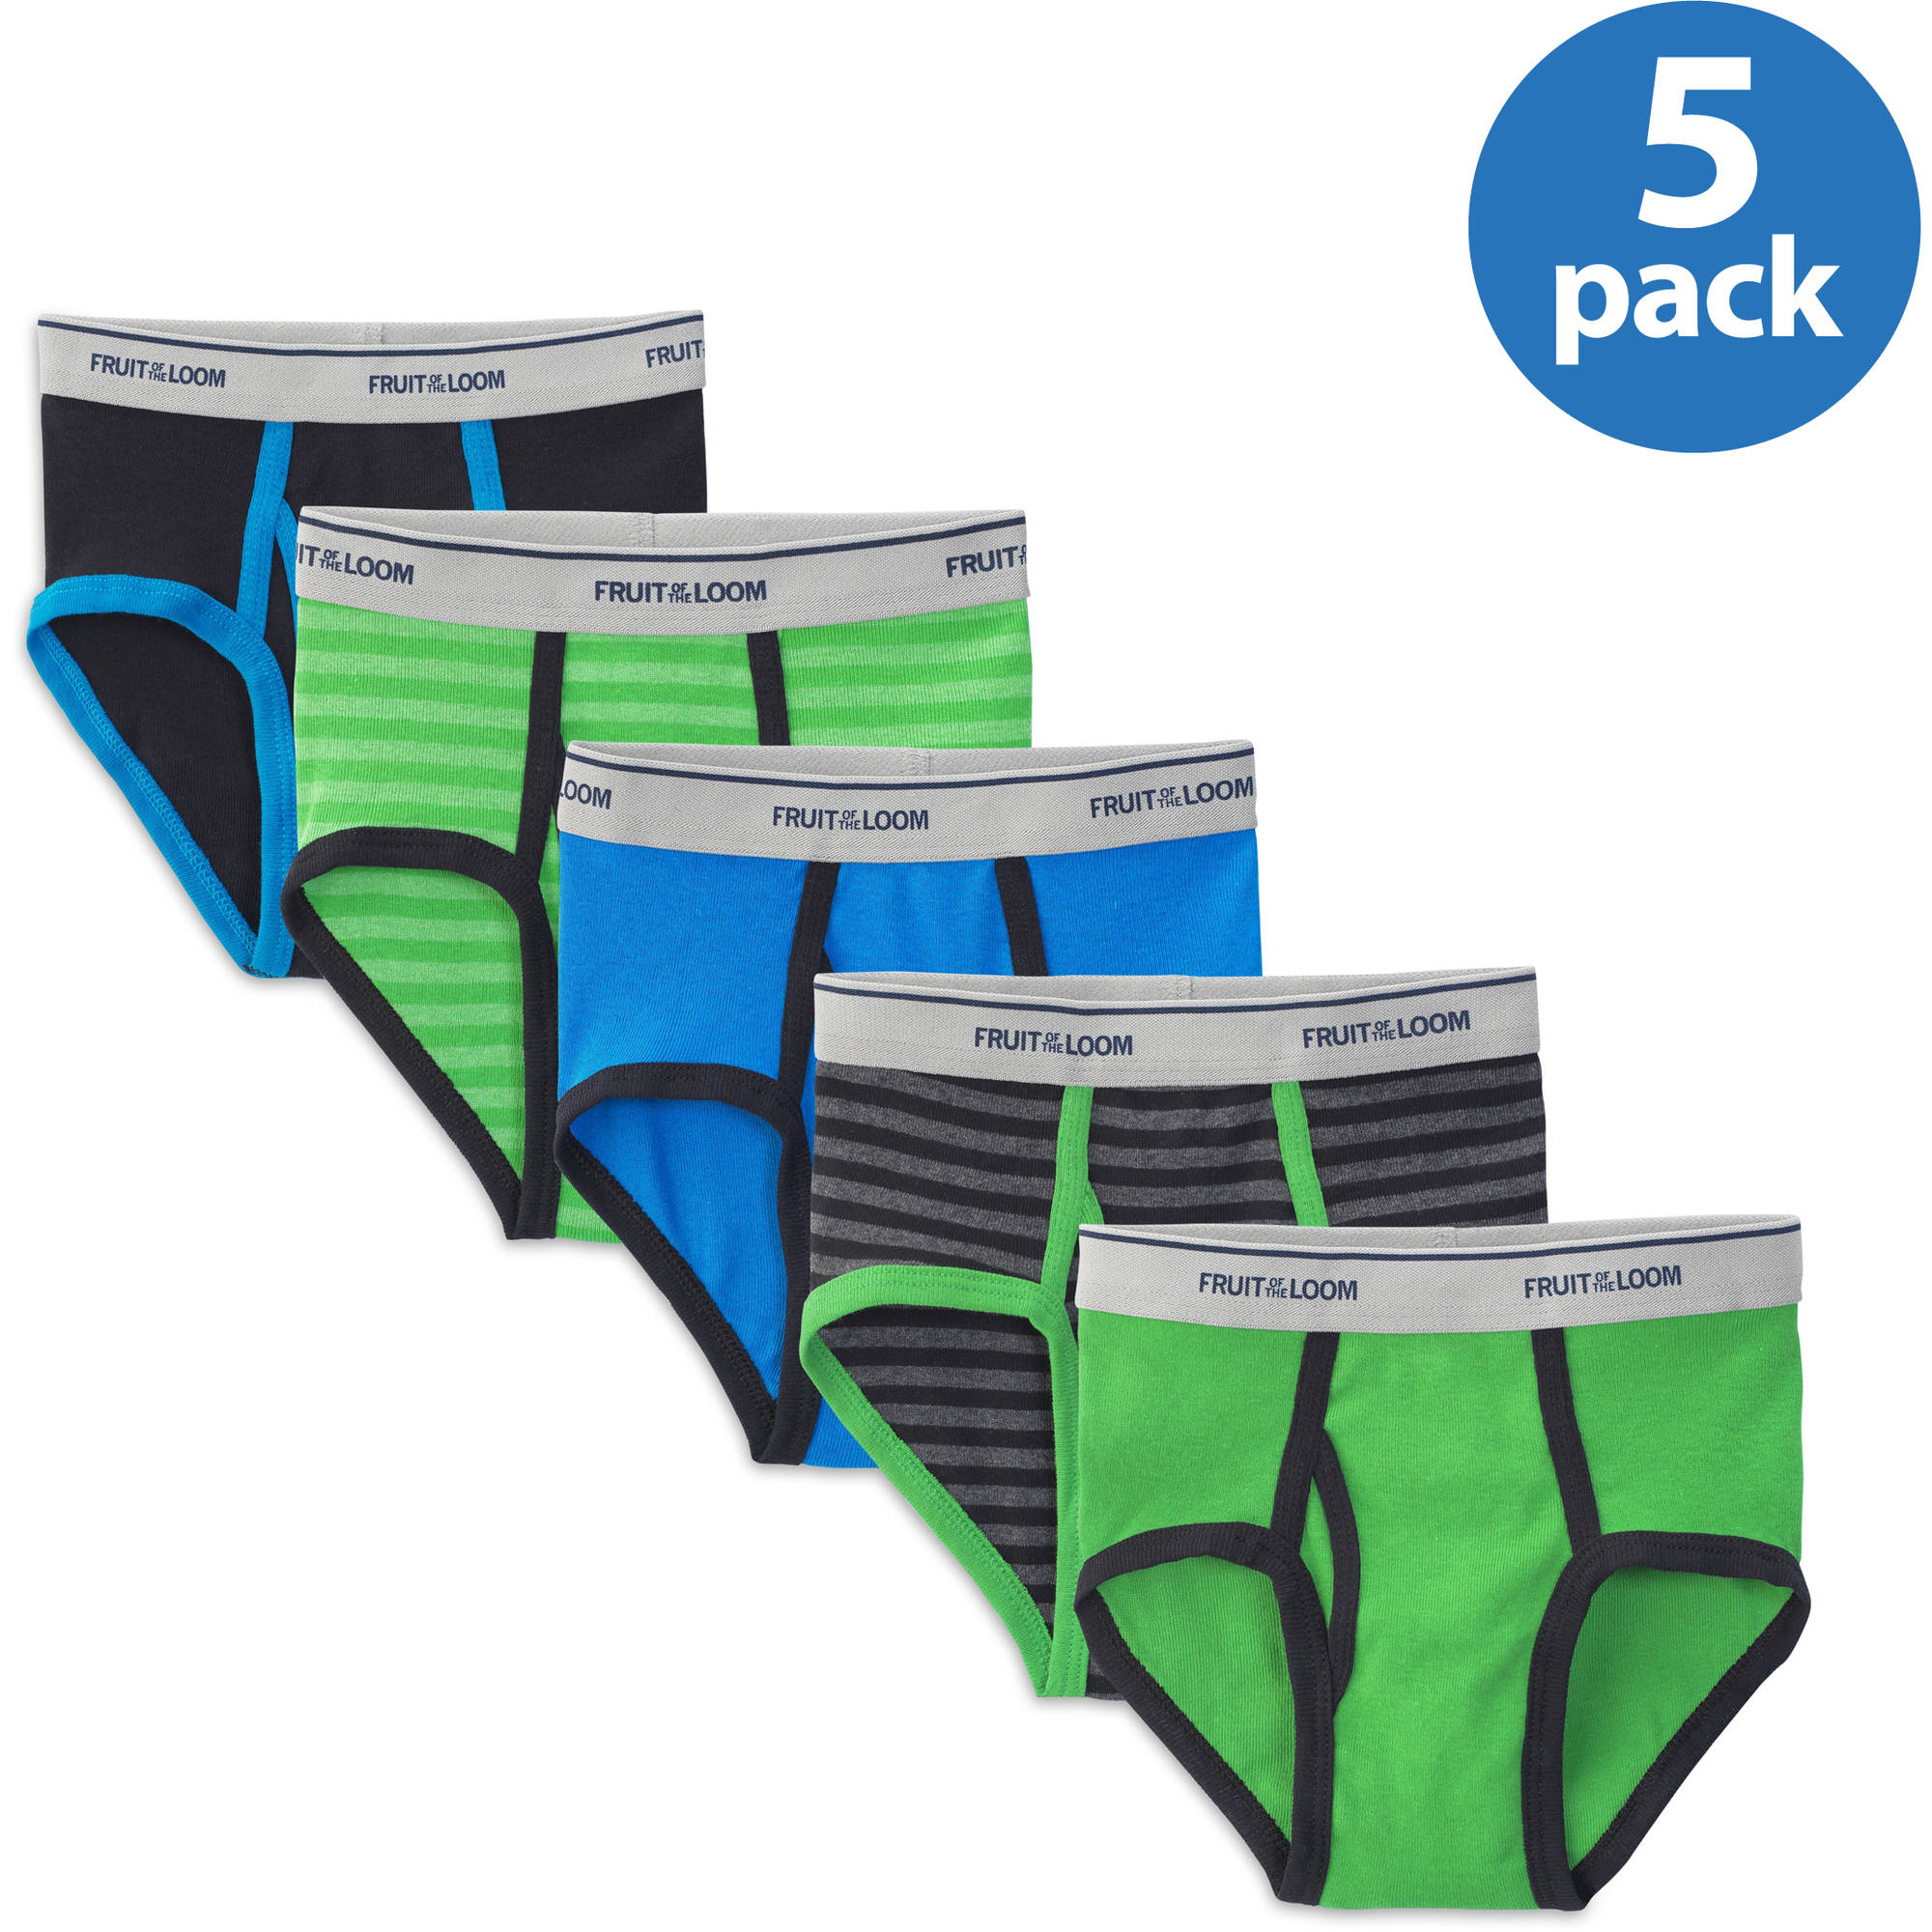 Fruit of the Loom Boys' Stripe/Solid Brief, 5-Pack